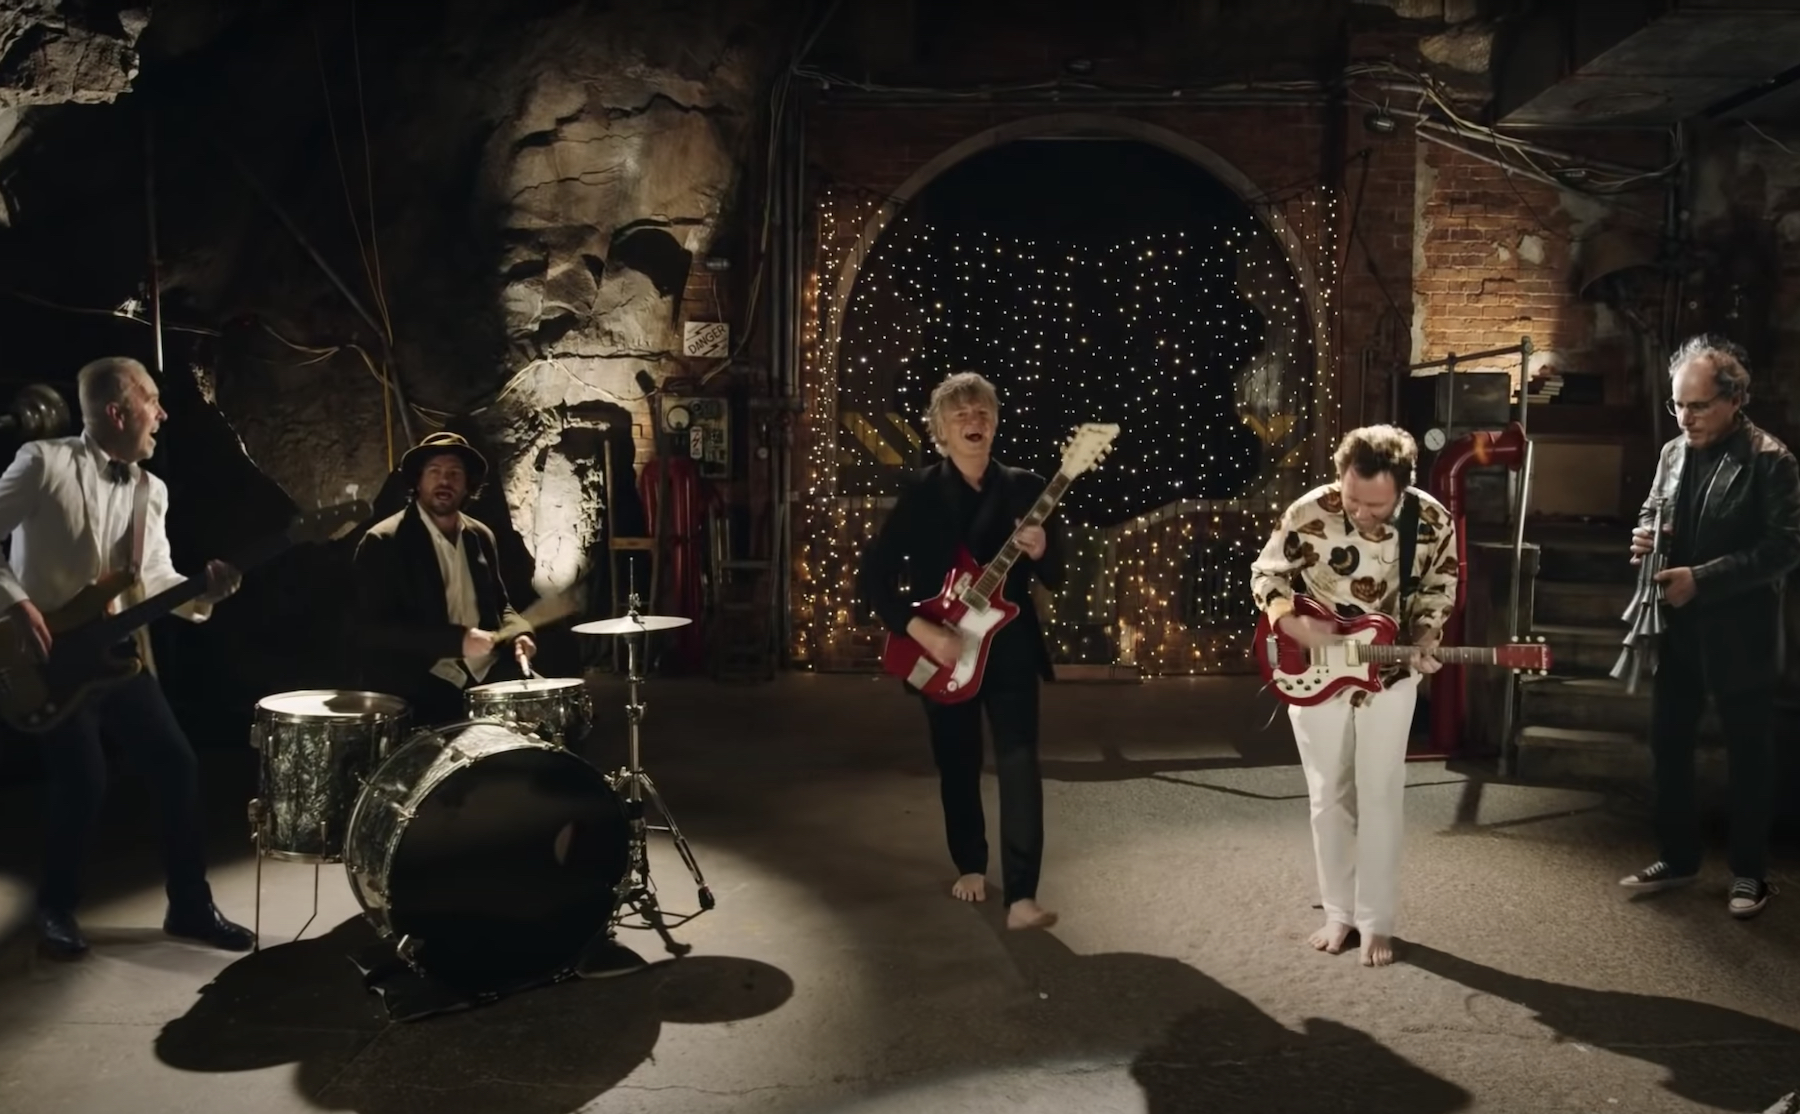 Crowded House Preview First New Album Since 2010 With 'To the Island' - Rolling Stone